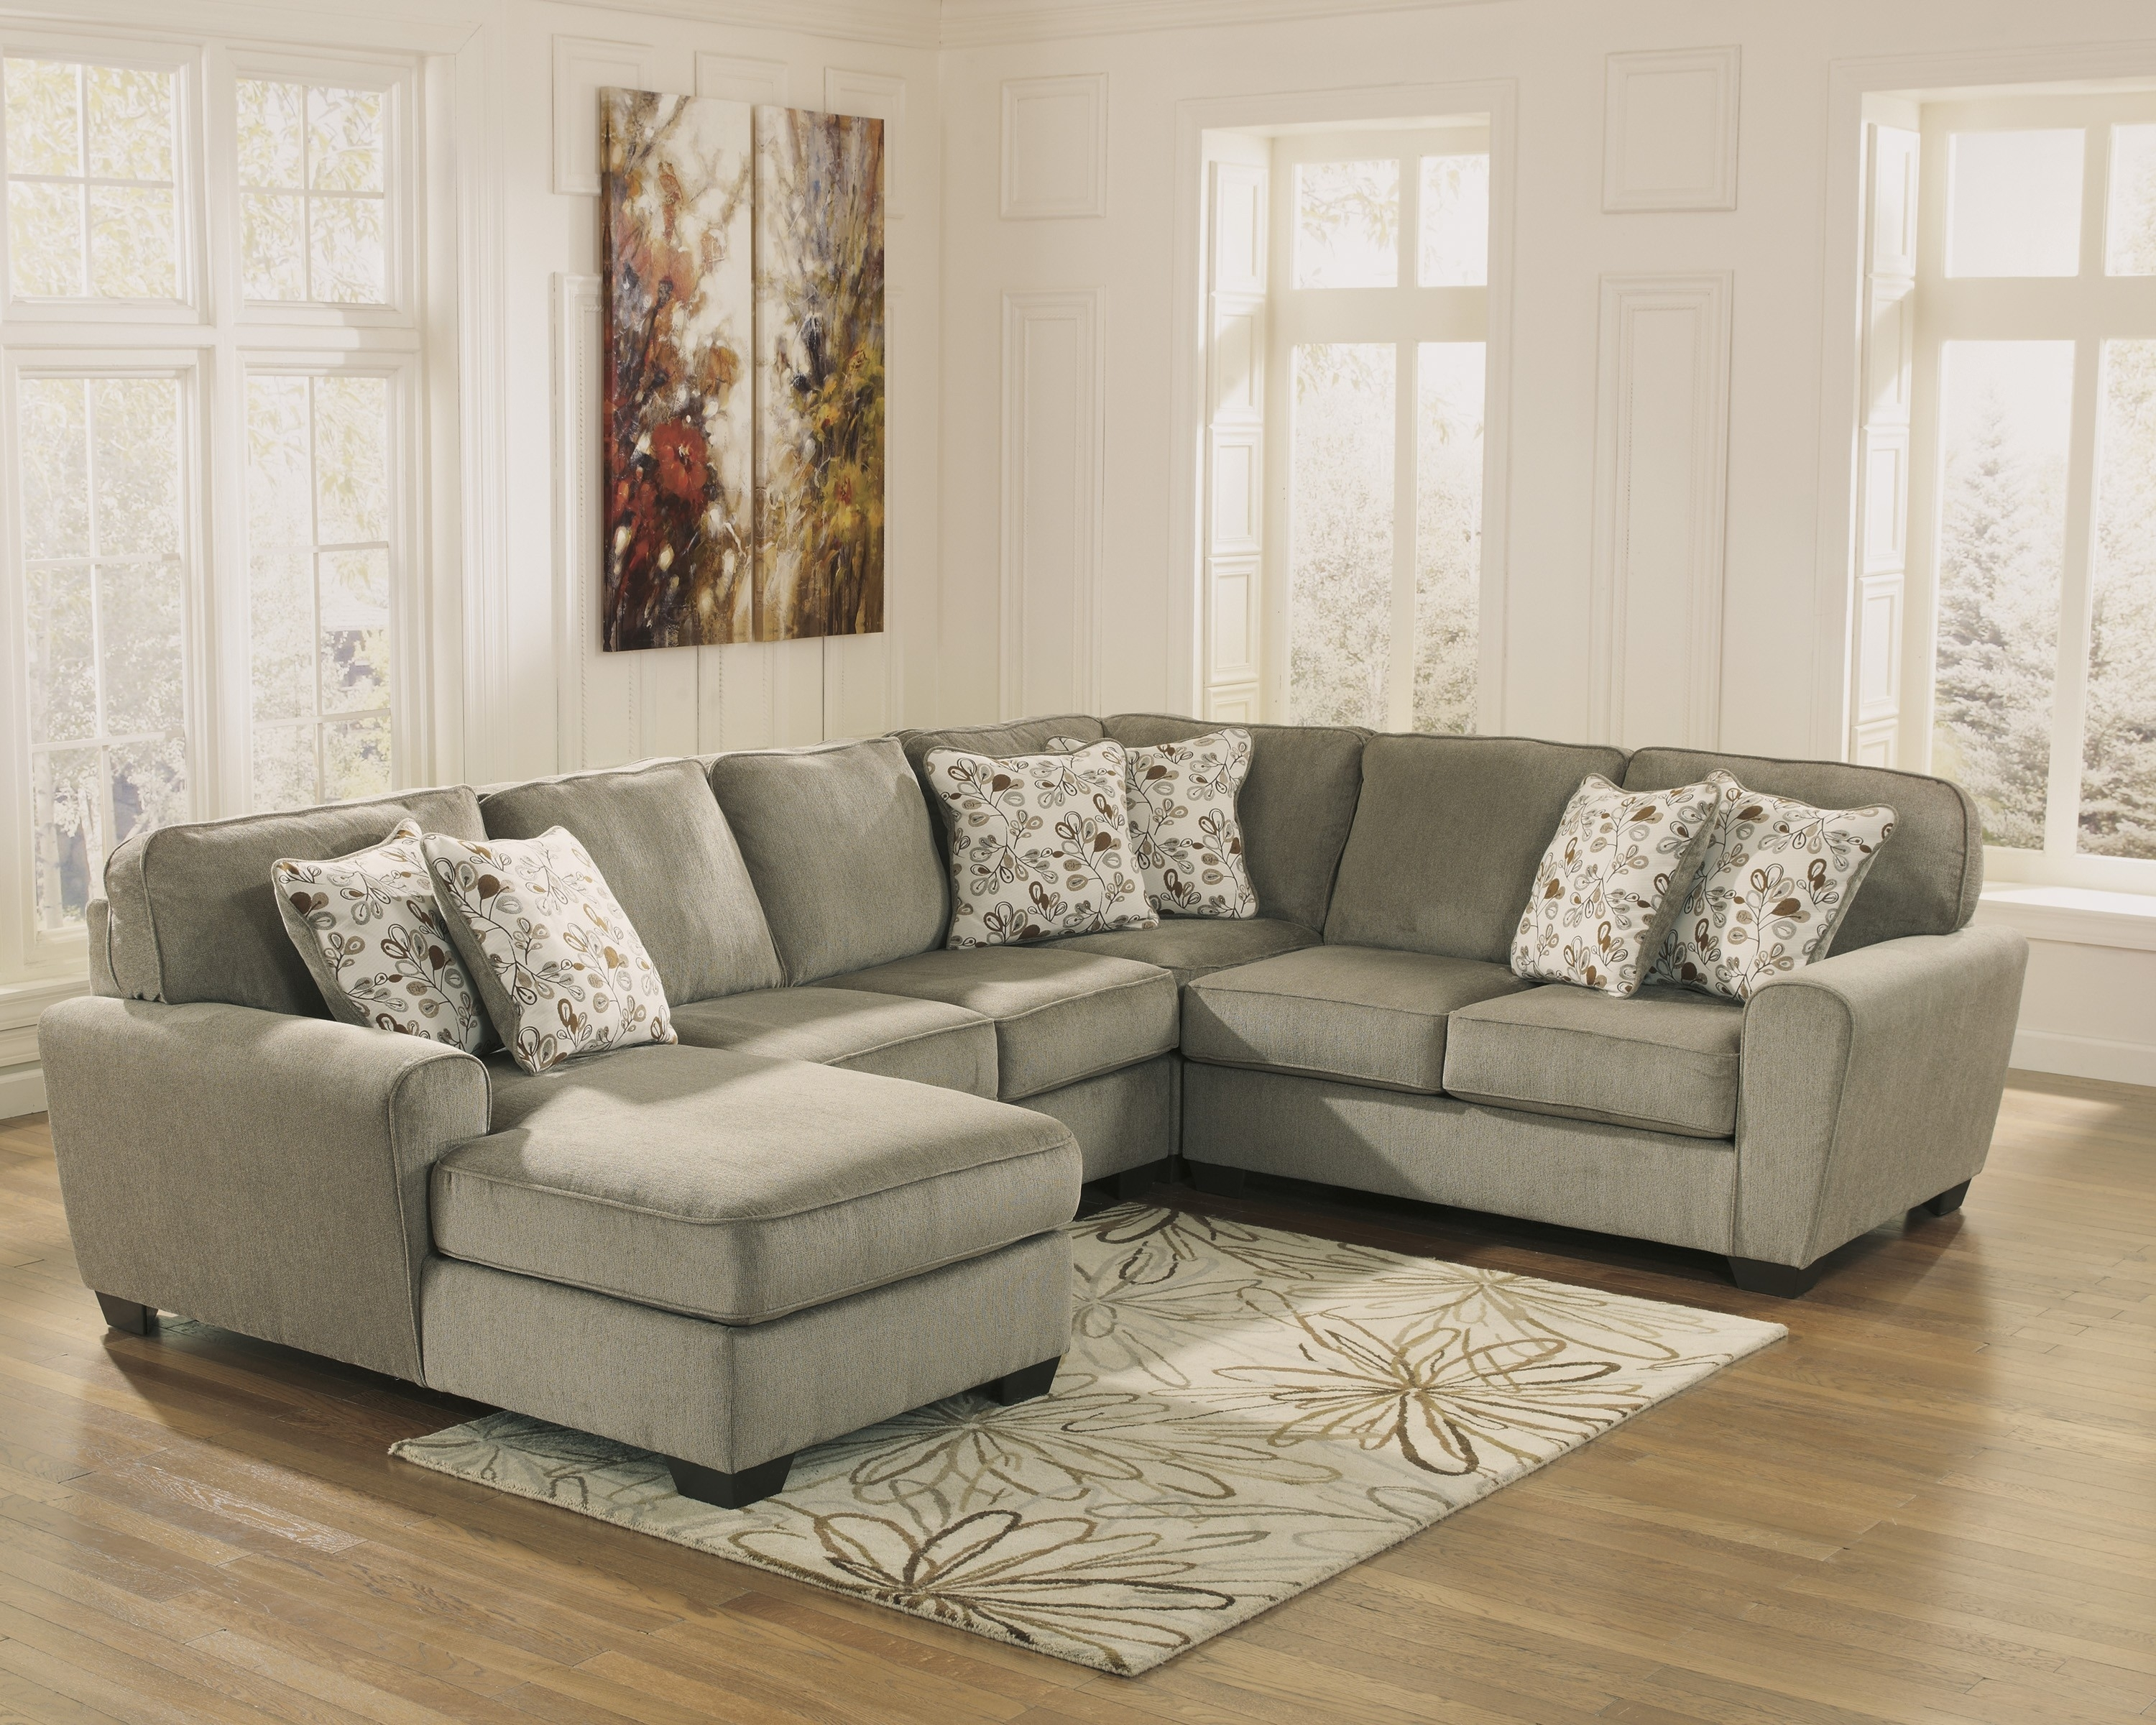 Fancy 4 Piece Sectional Sofa 21 Living Room Sofa Ideas With 4 Piece Within Alder 4 Piece Sectionals (Image 11 of 25)